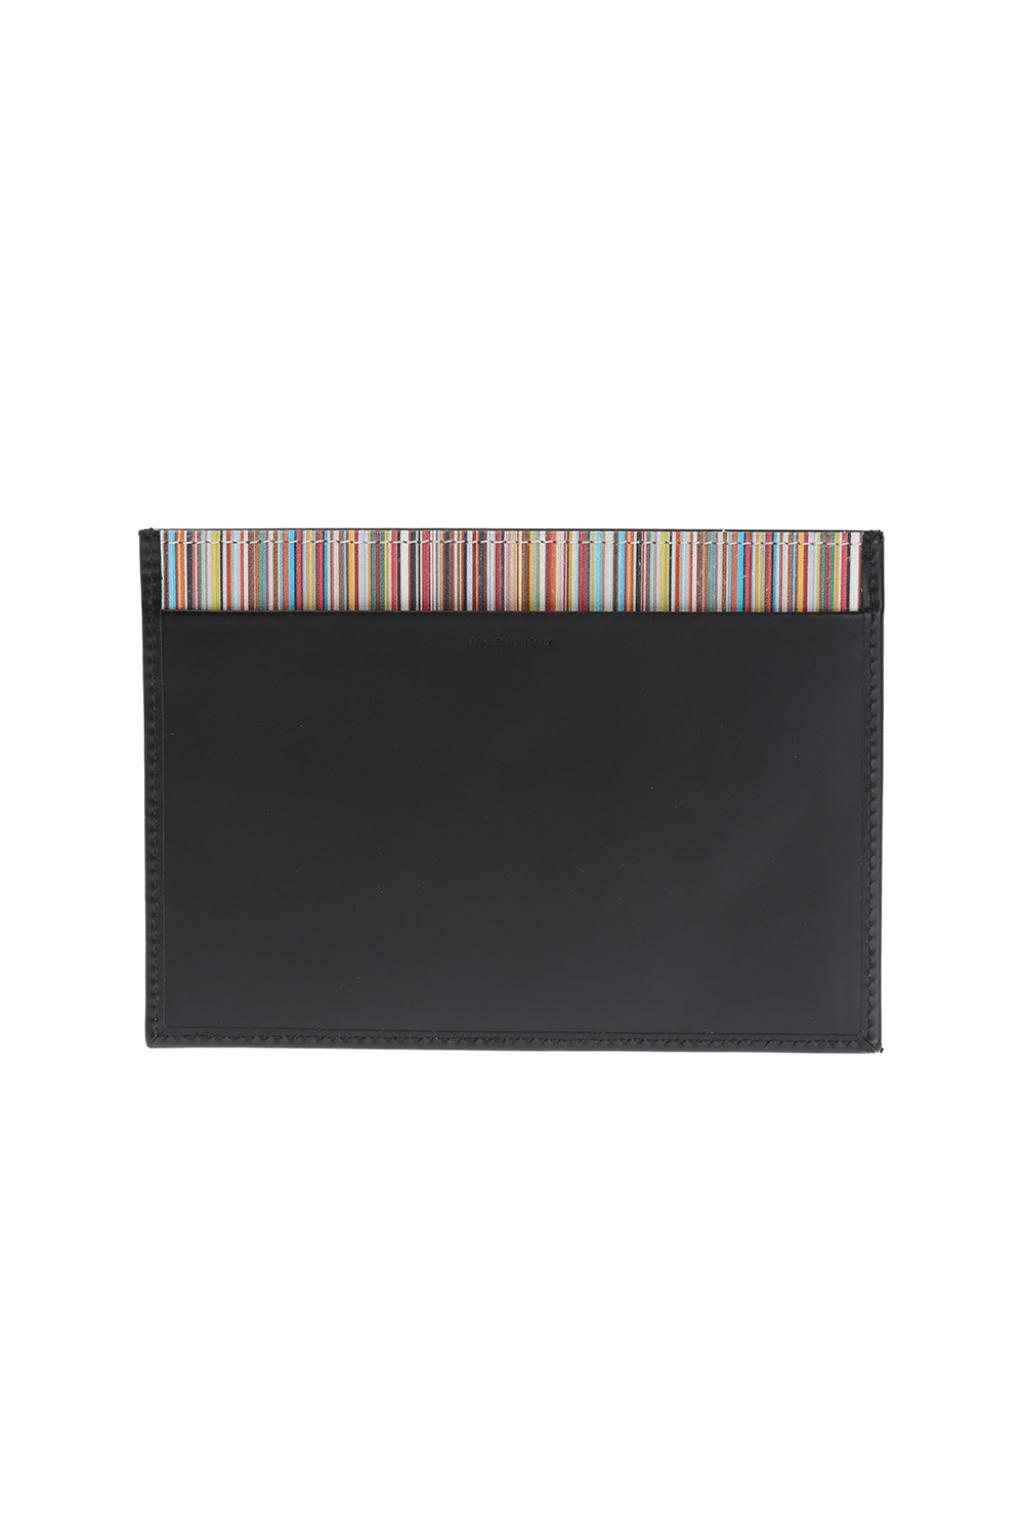 Paul Smith Leather Card Case